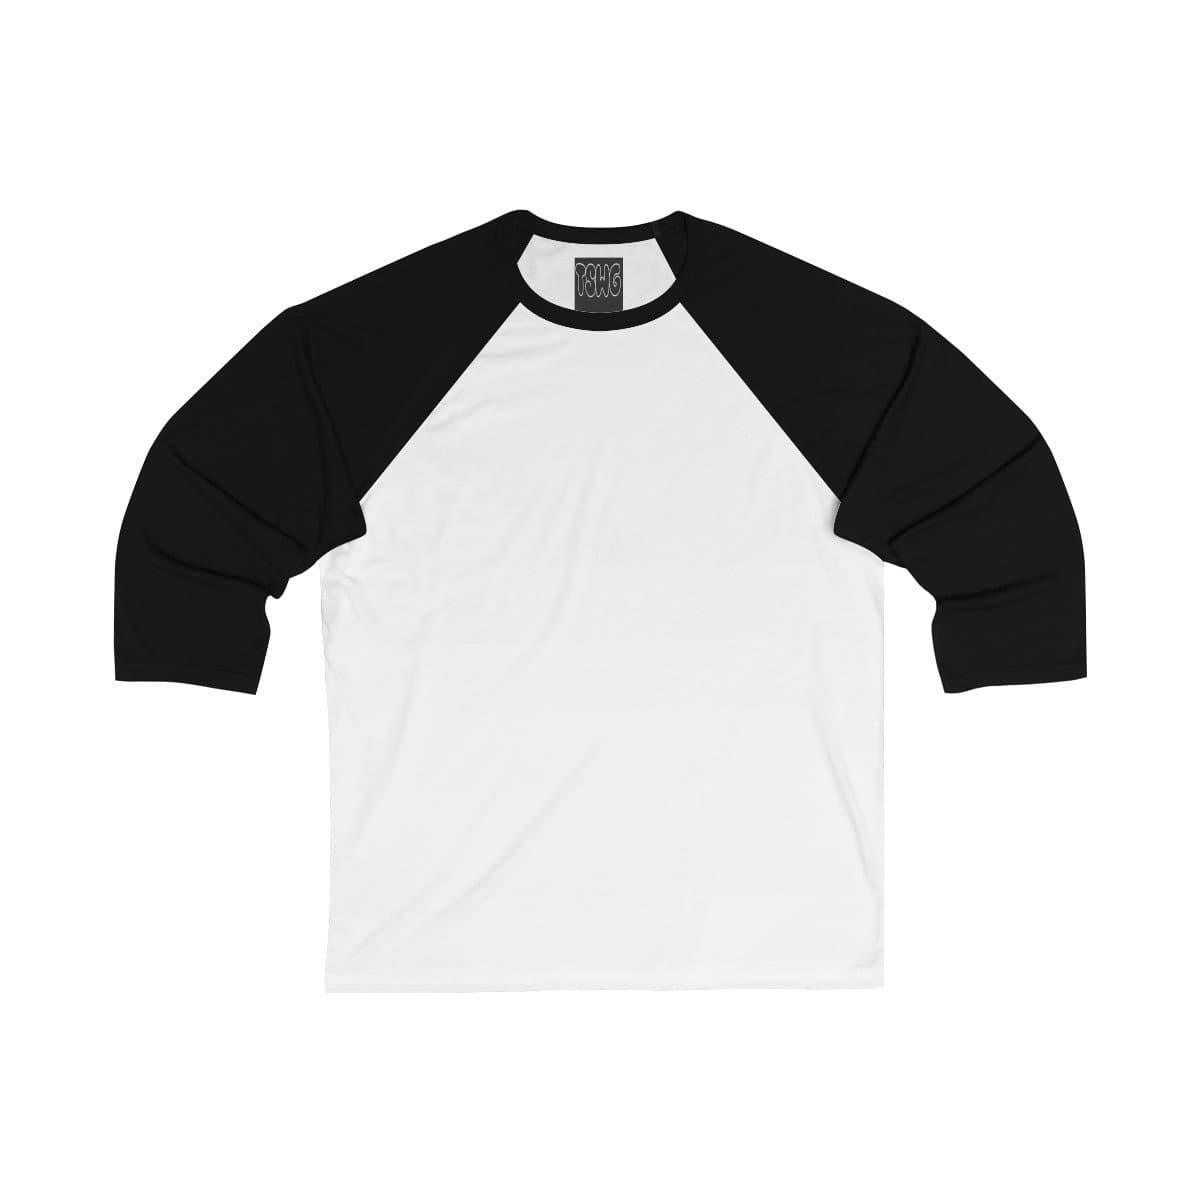 TSWG (Tough Smooth Well Groomed) Men´s 3/4 Sleeve Baseball Tee - Tie-Fly